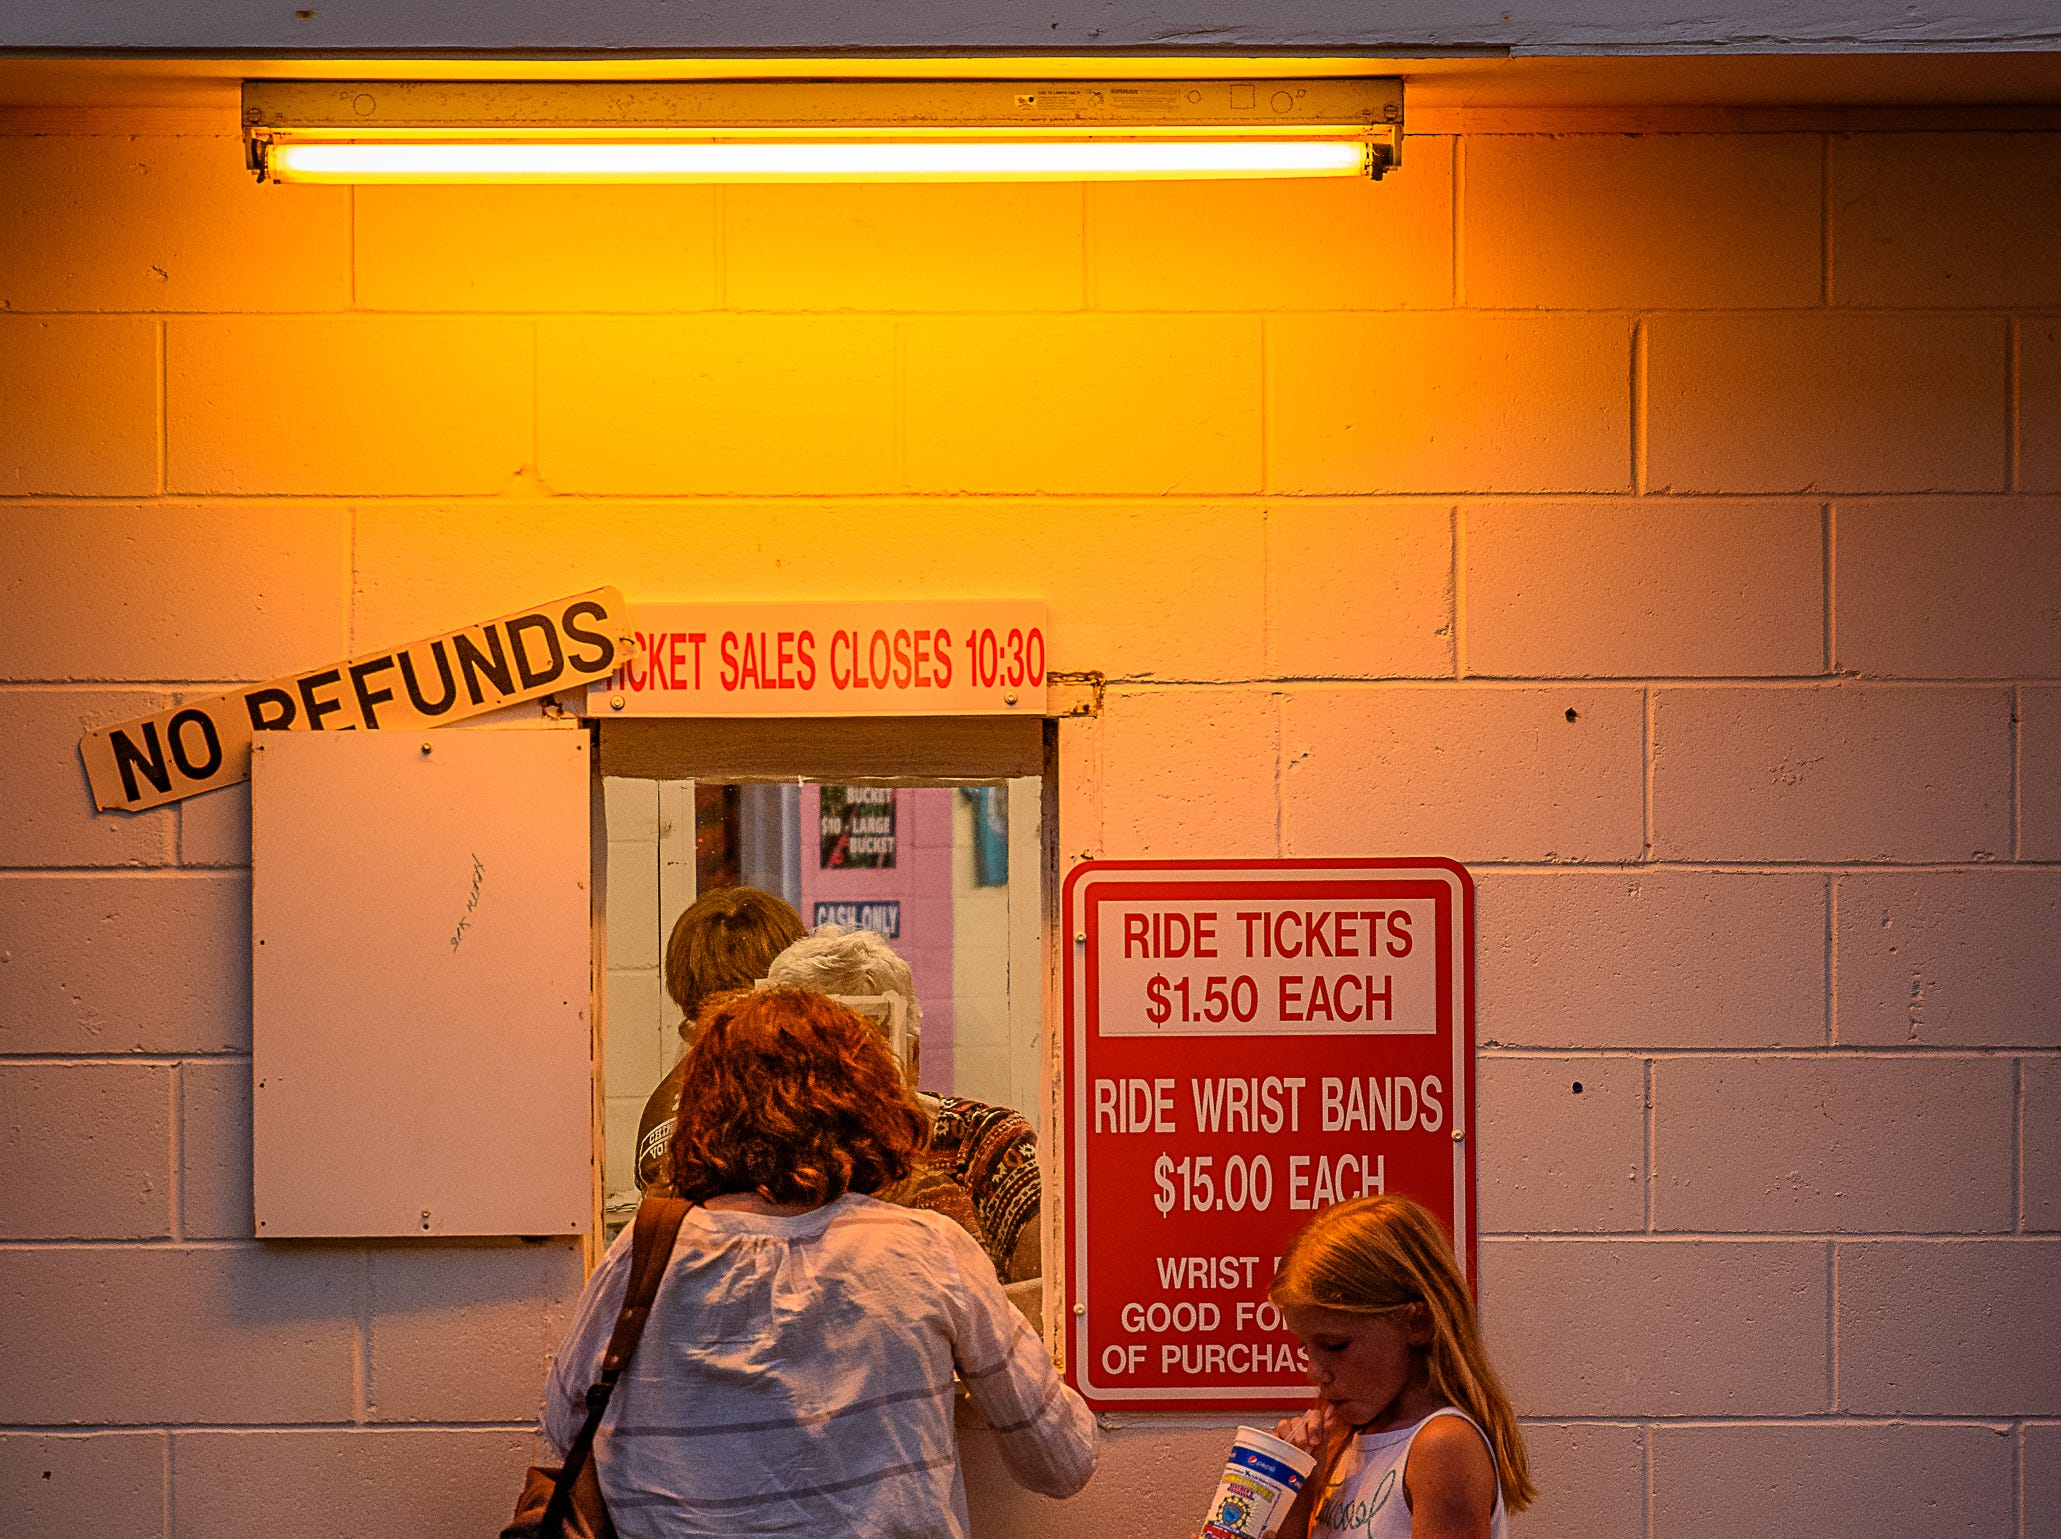 Buying tickets for the evenings festivities at the Chincoteague Fireman's Carnival.